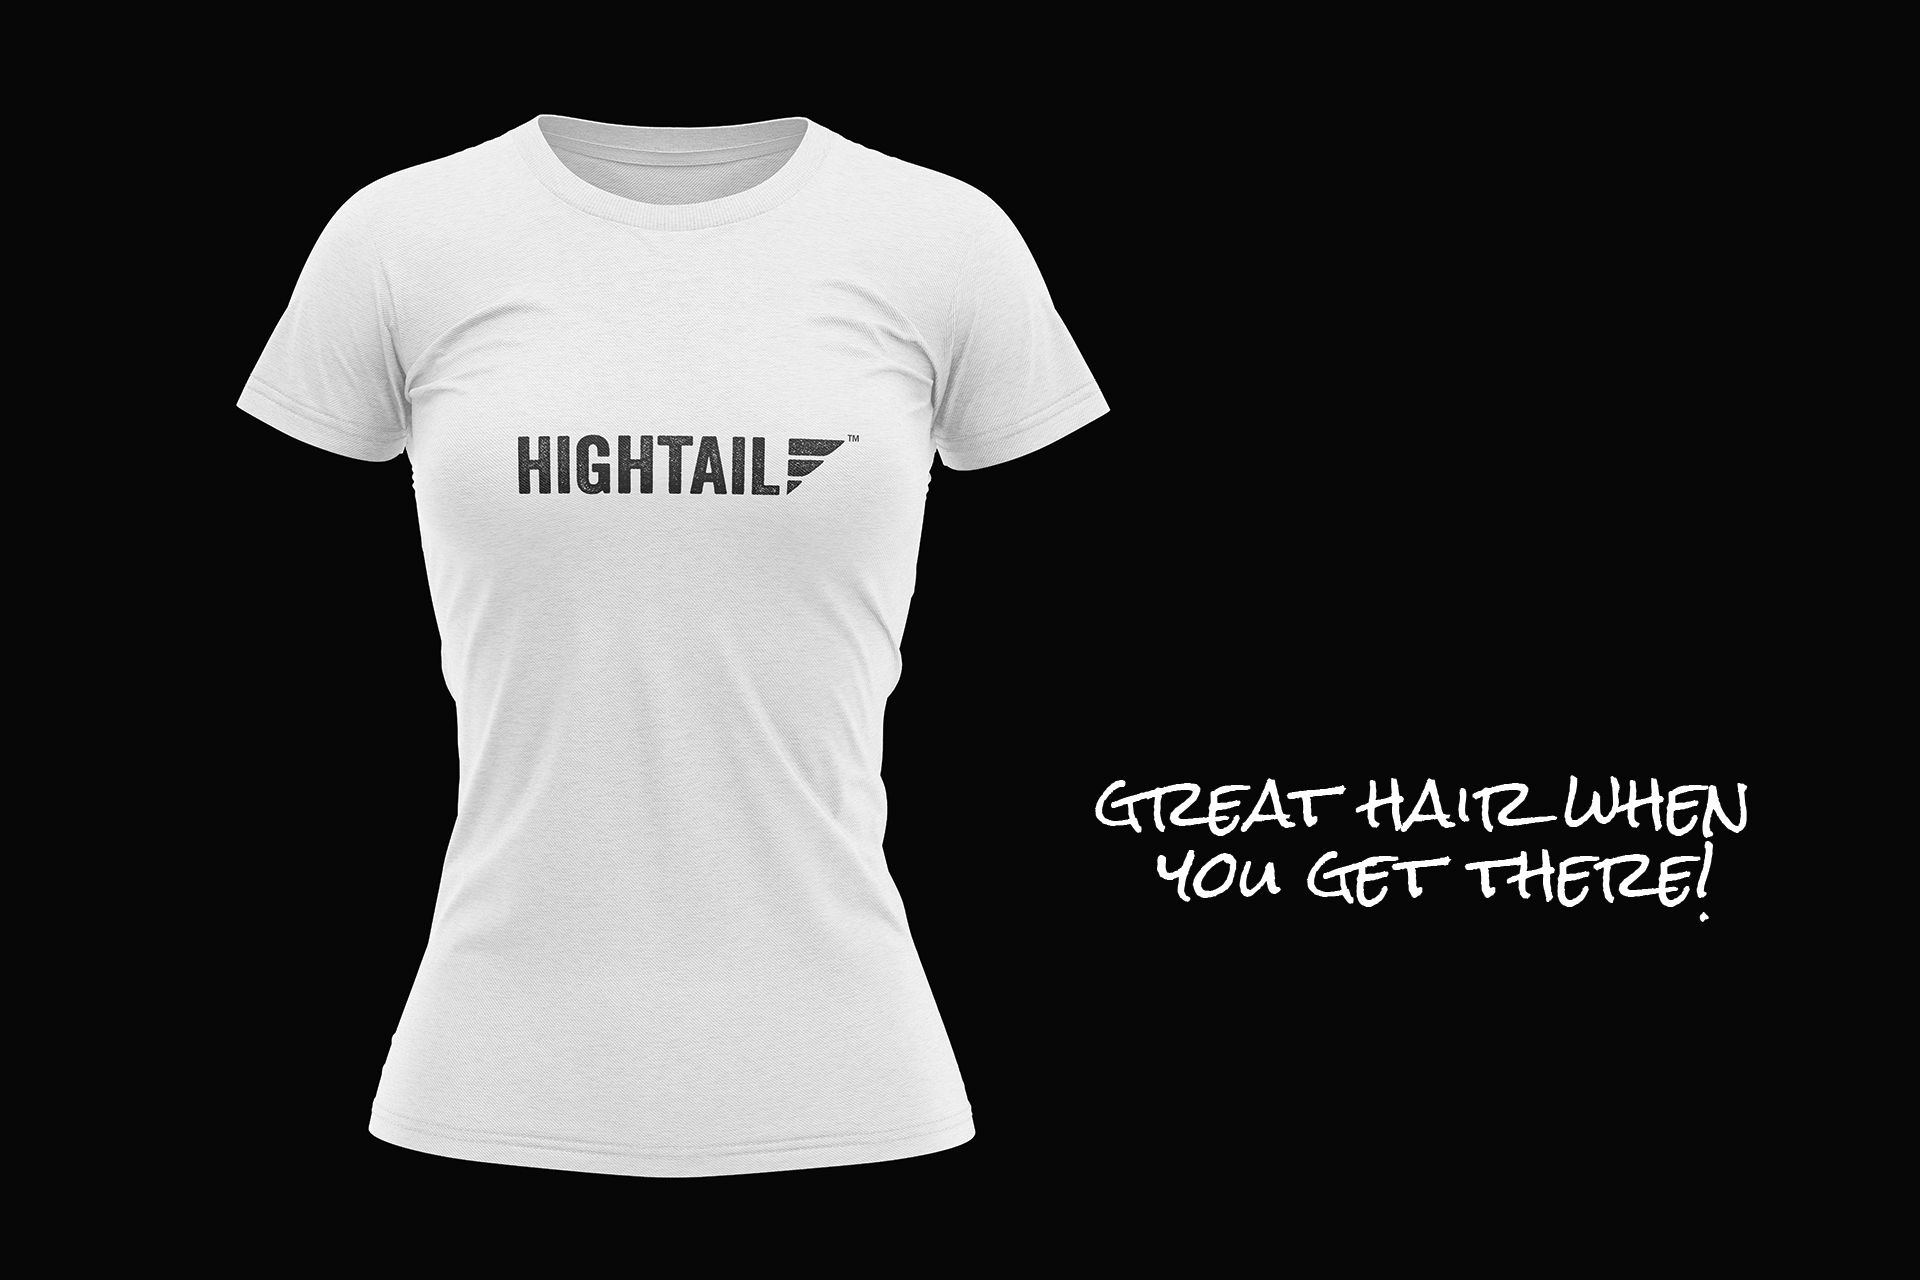 Hightail Branded t-shirt